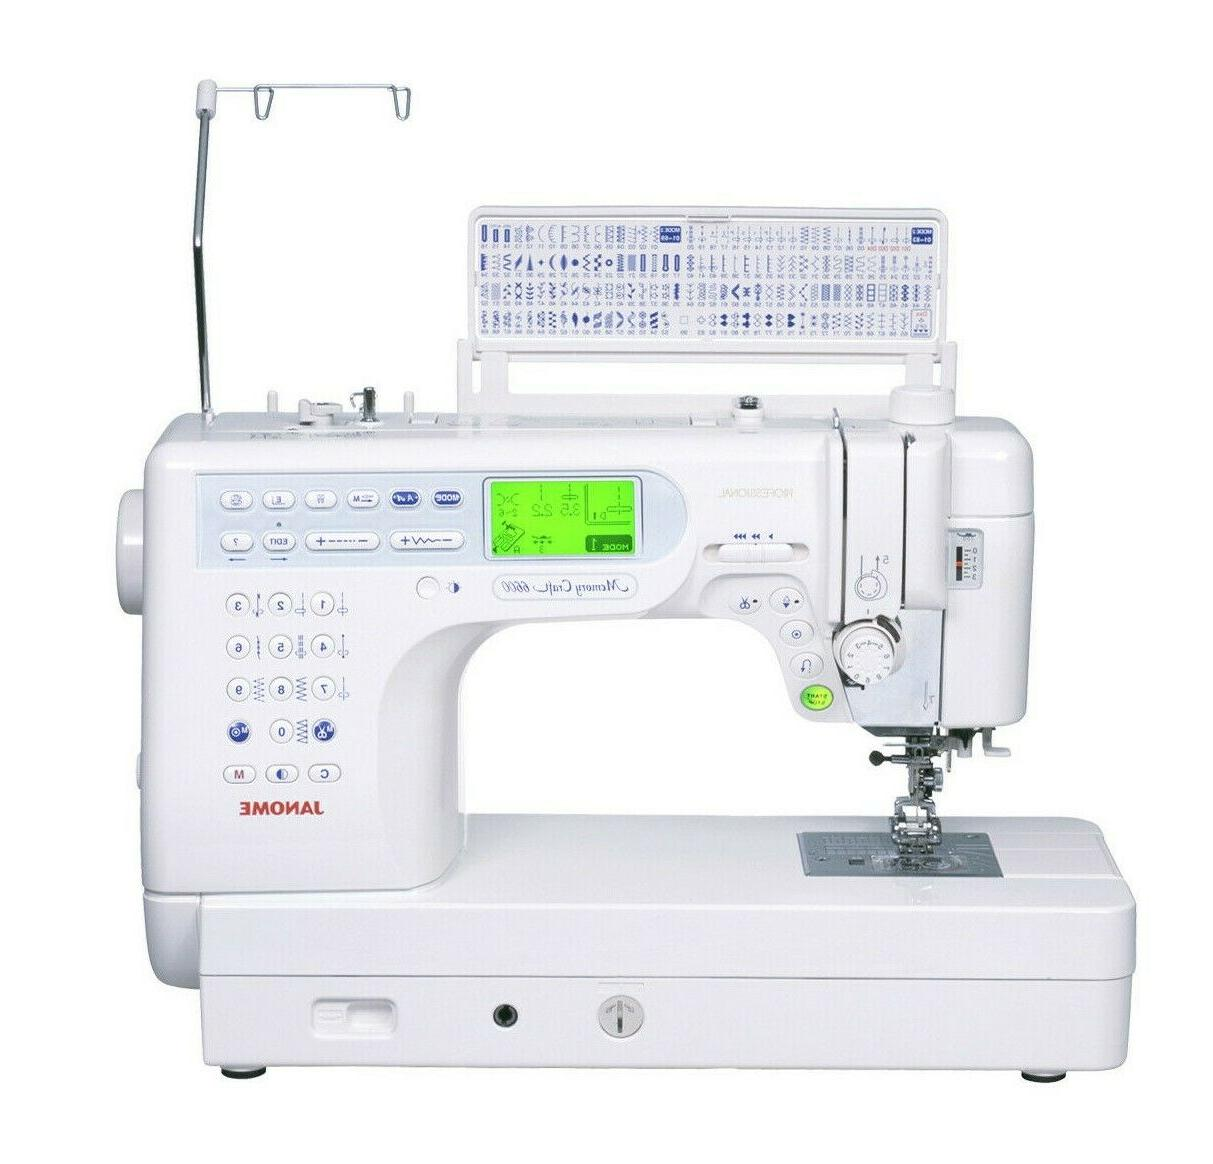 7700 qcp sewing quilting machine